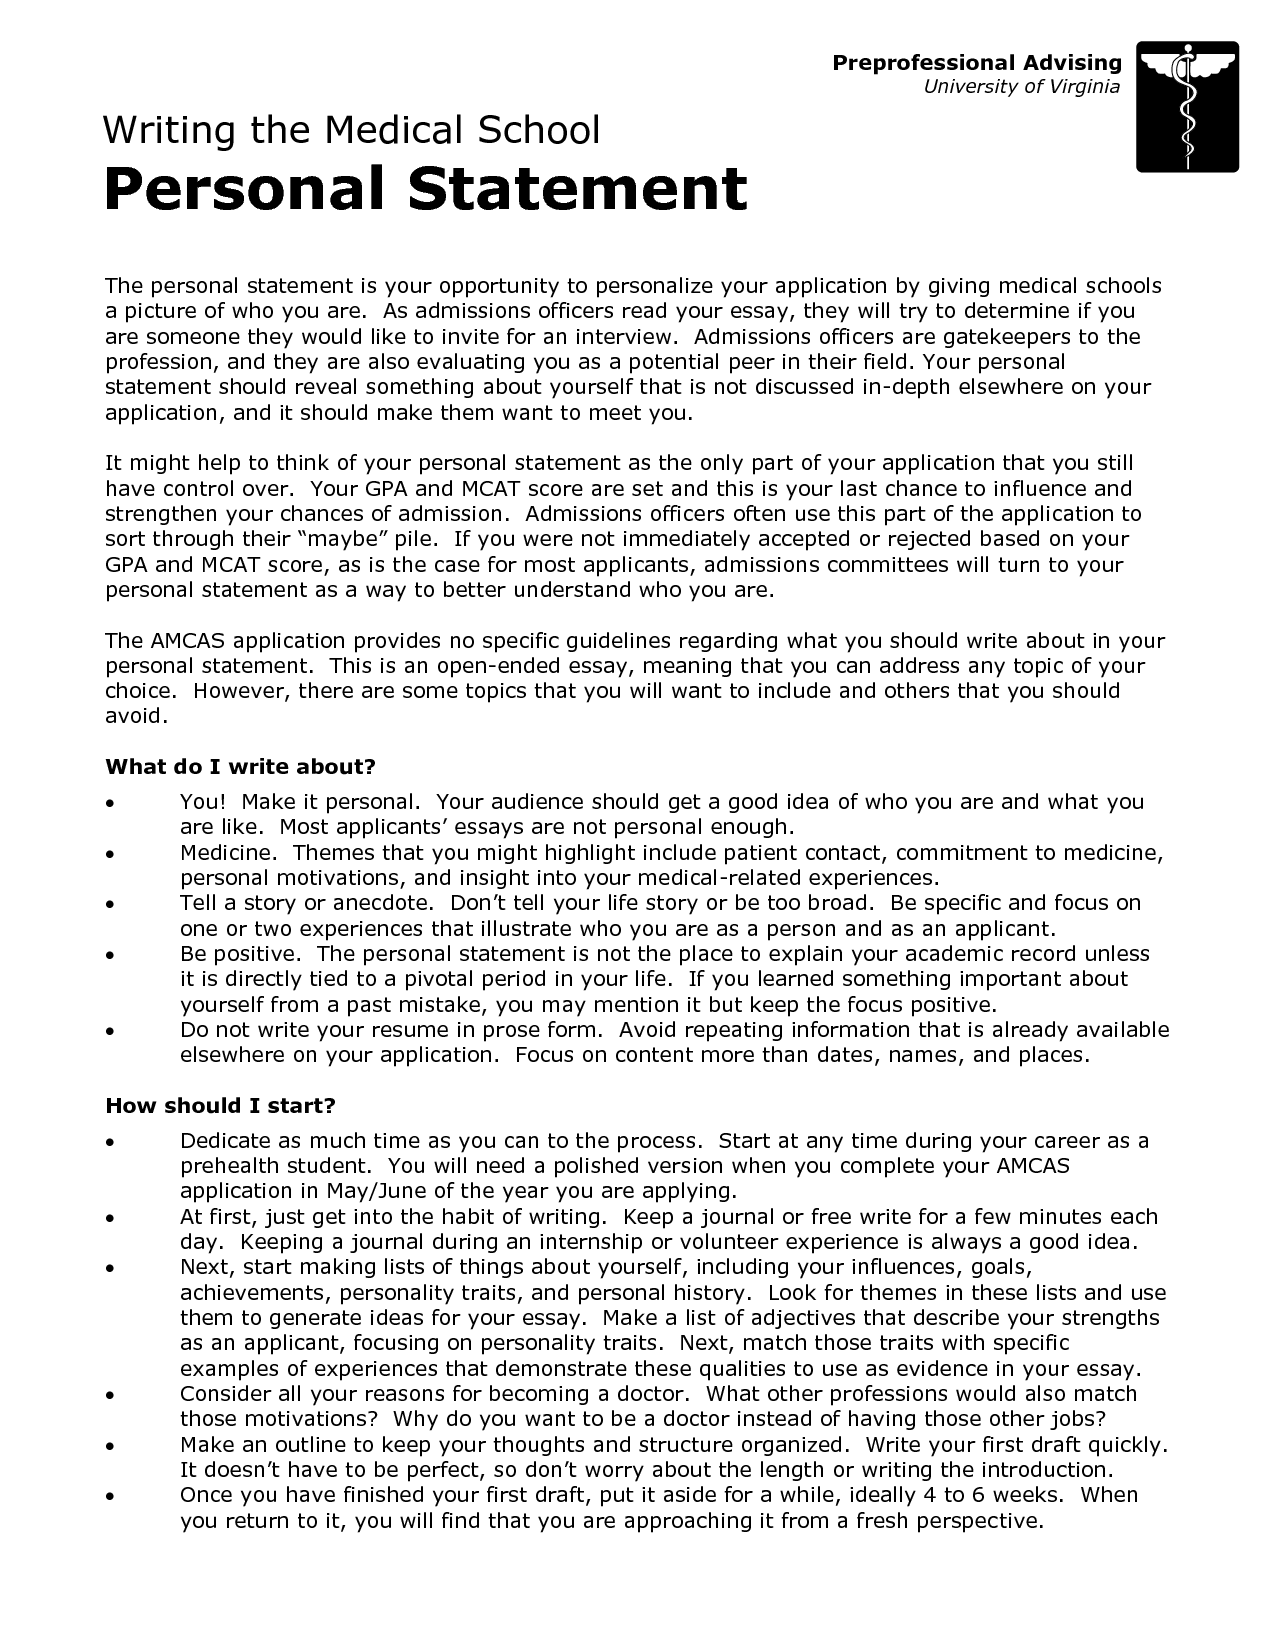 Personal Statement Examples - Sample Law School Personal Statements